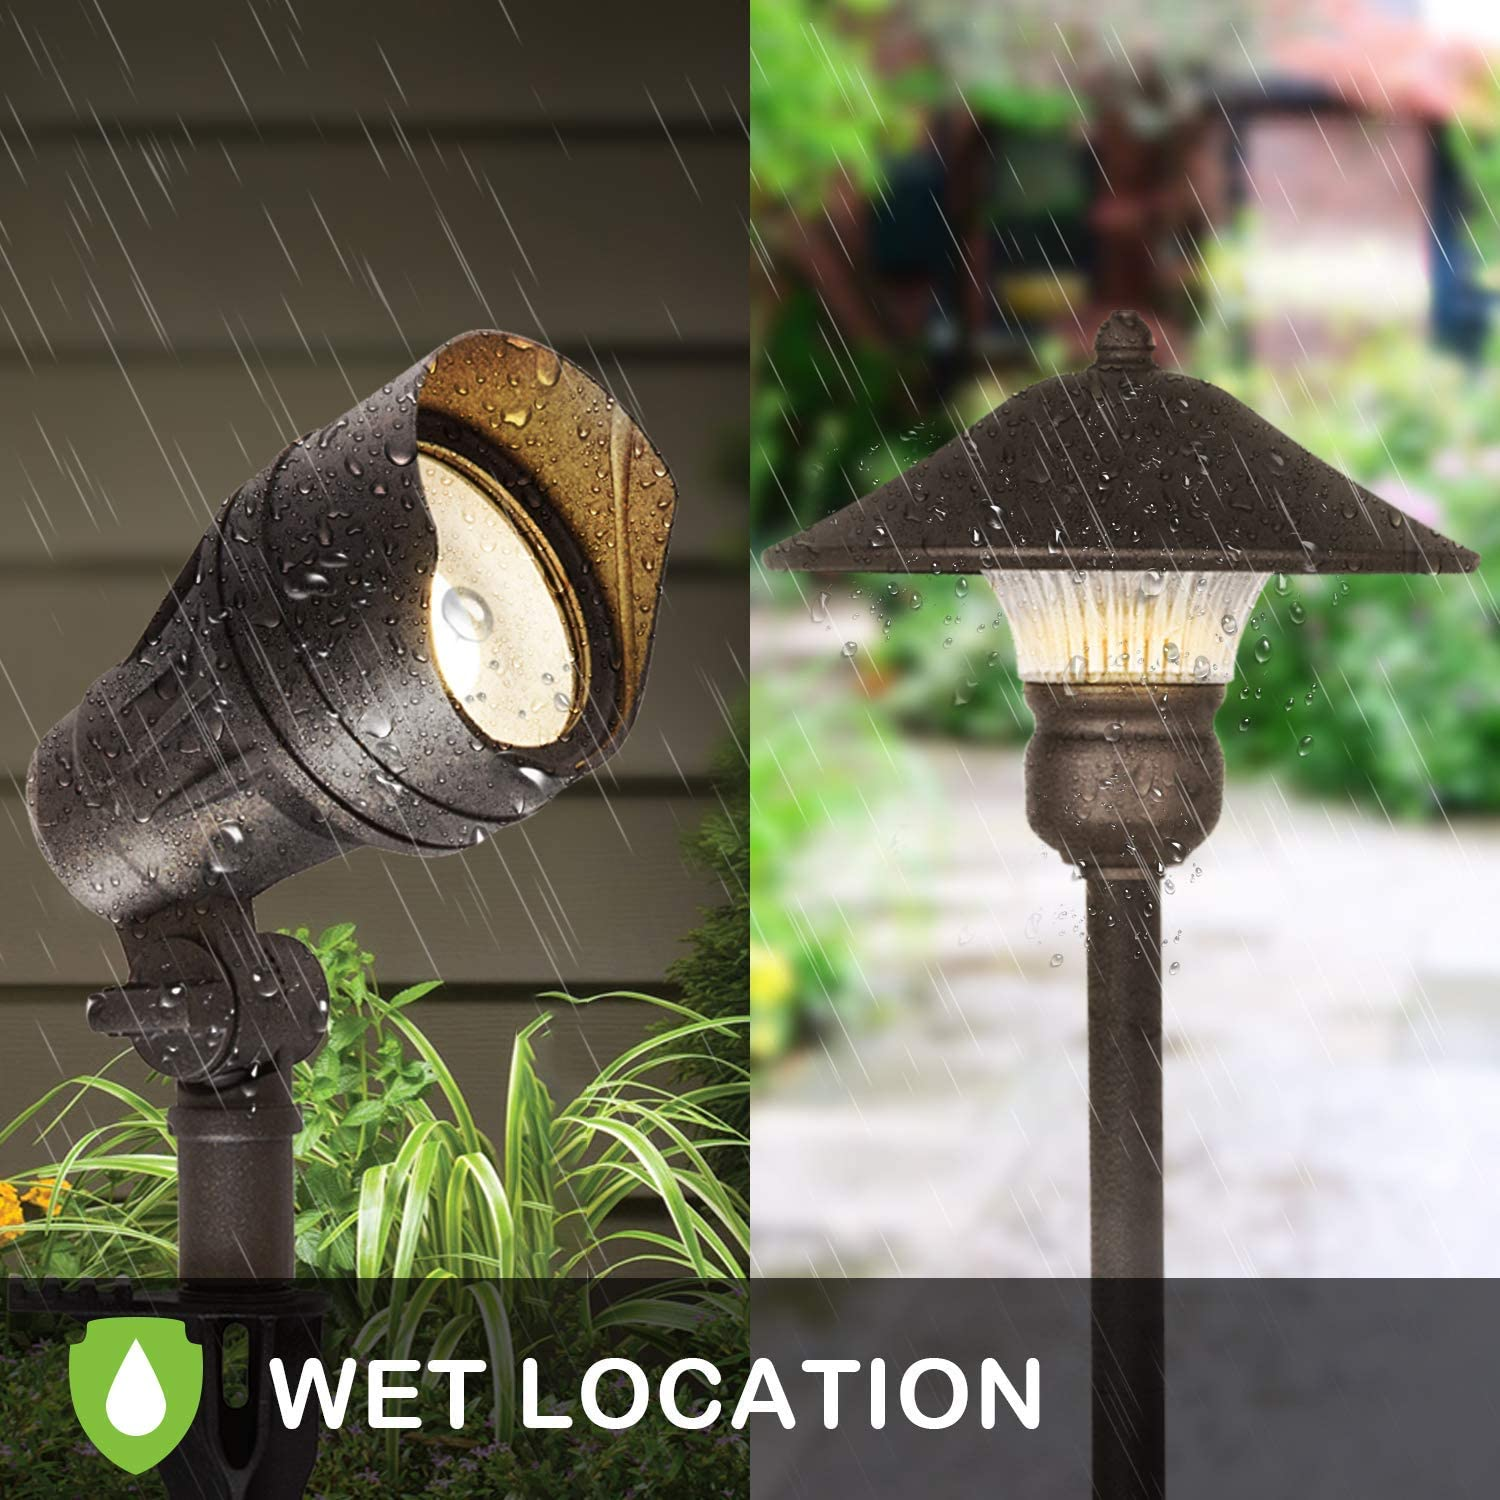 Hykolity 8 Pack Low Voltage Led Landscape Kits 12v Pathway Flood Light Kits 10w 390lm And 3w 150lm Wired For Outdoor Yard Lawn Die Cast Aluminum 50w And 30w Equivalent 15 Year Lifespan Tools